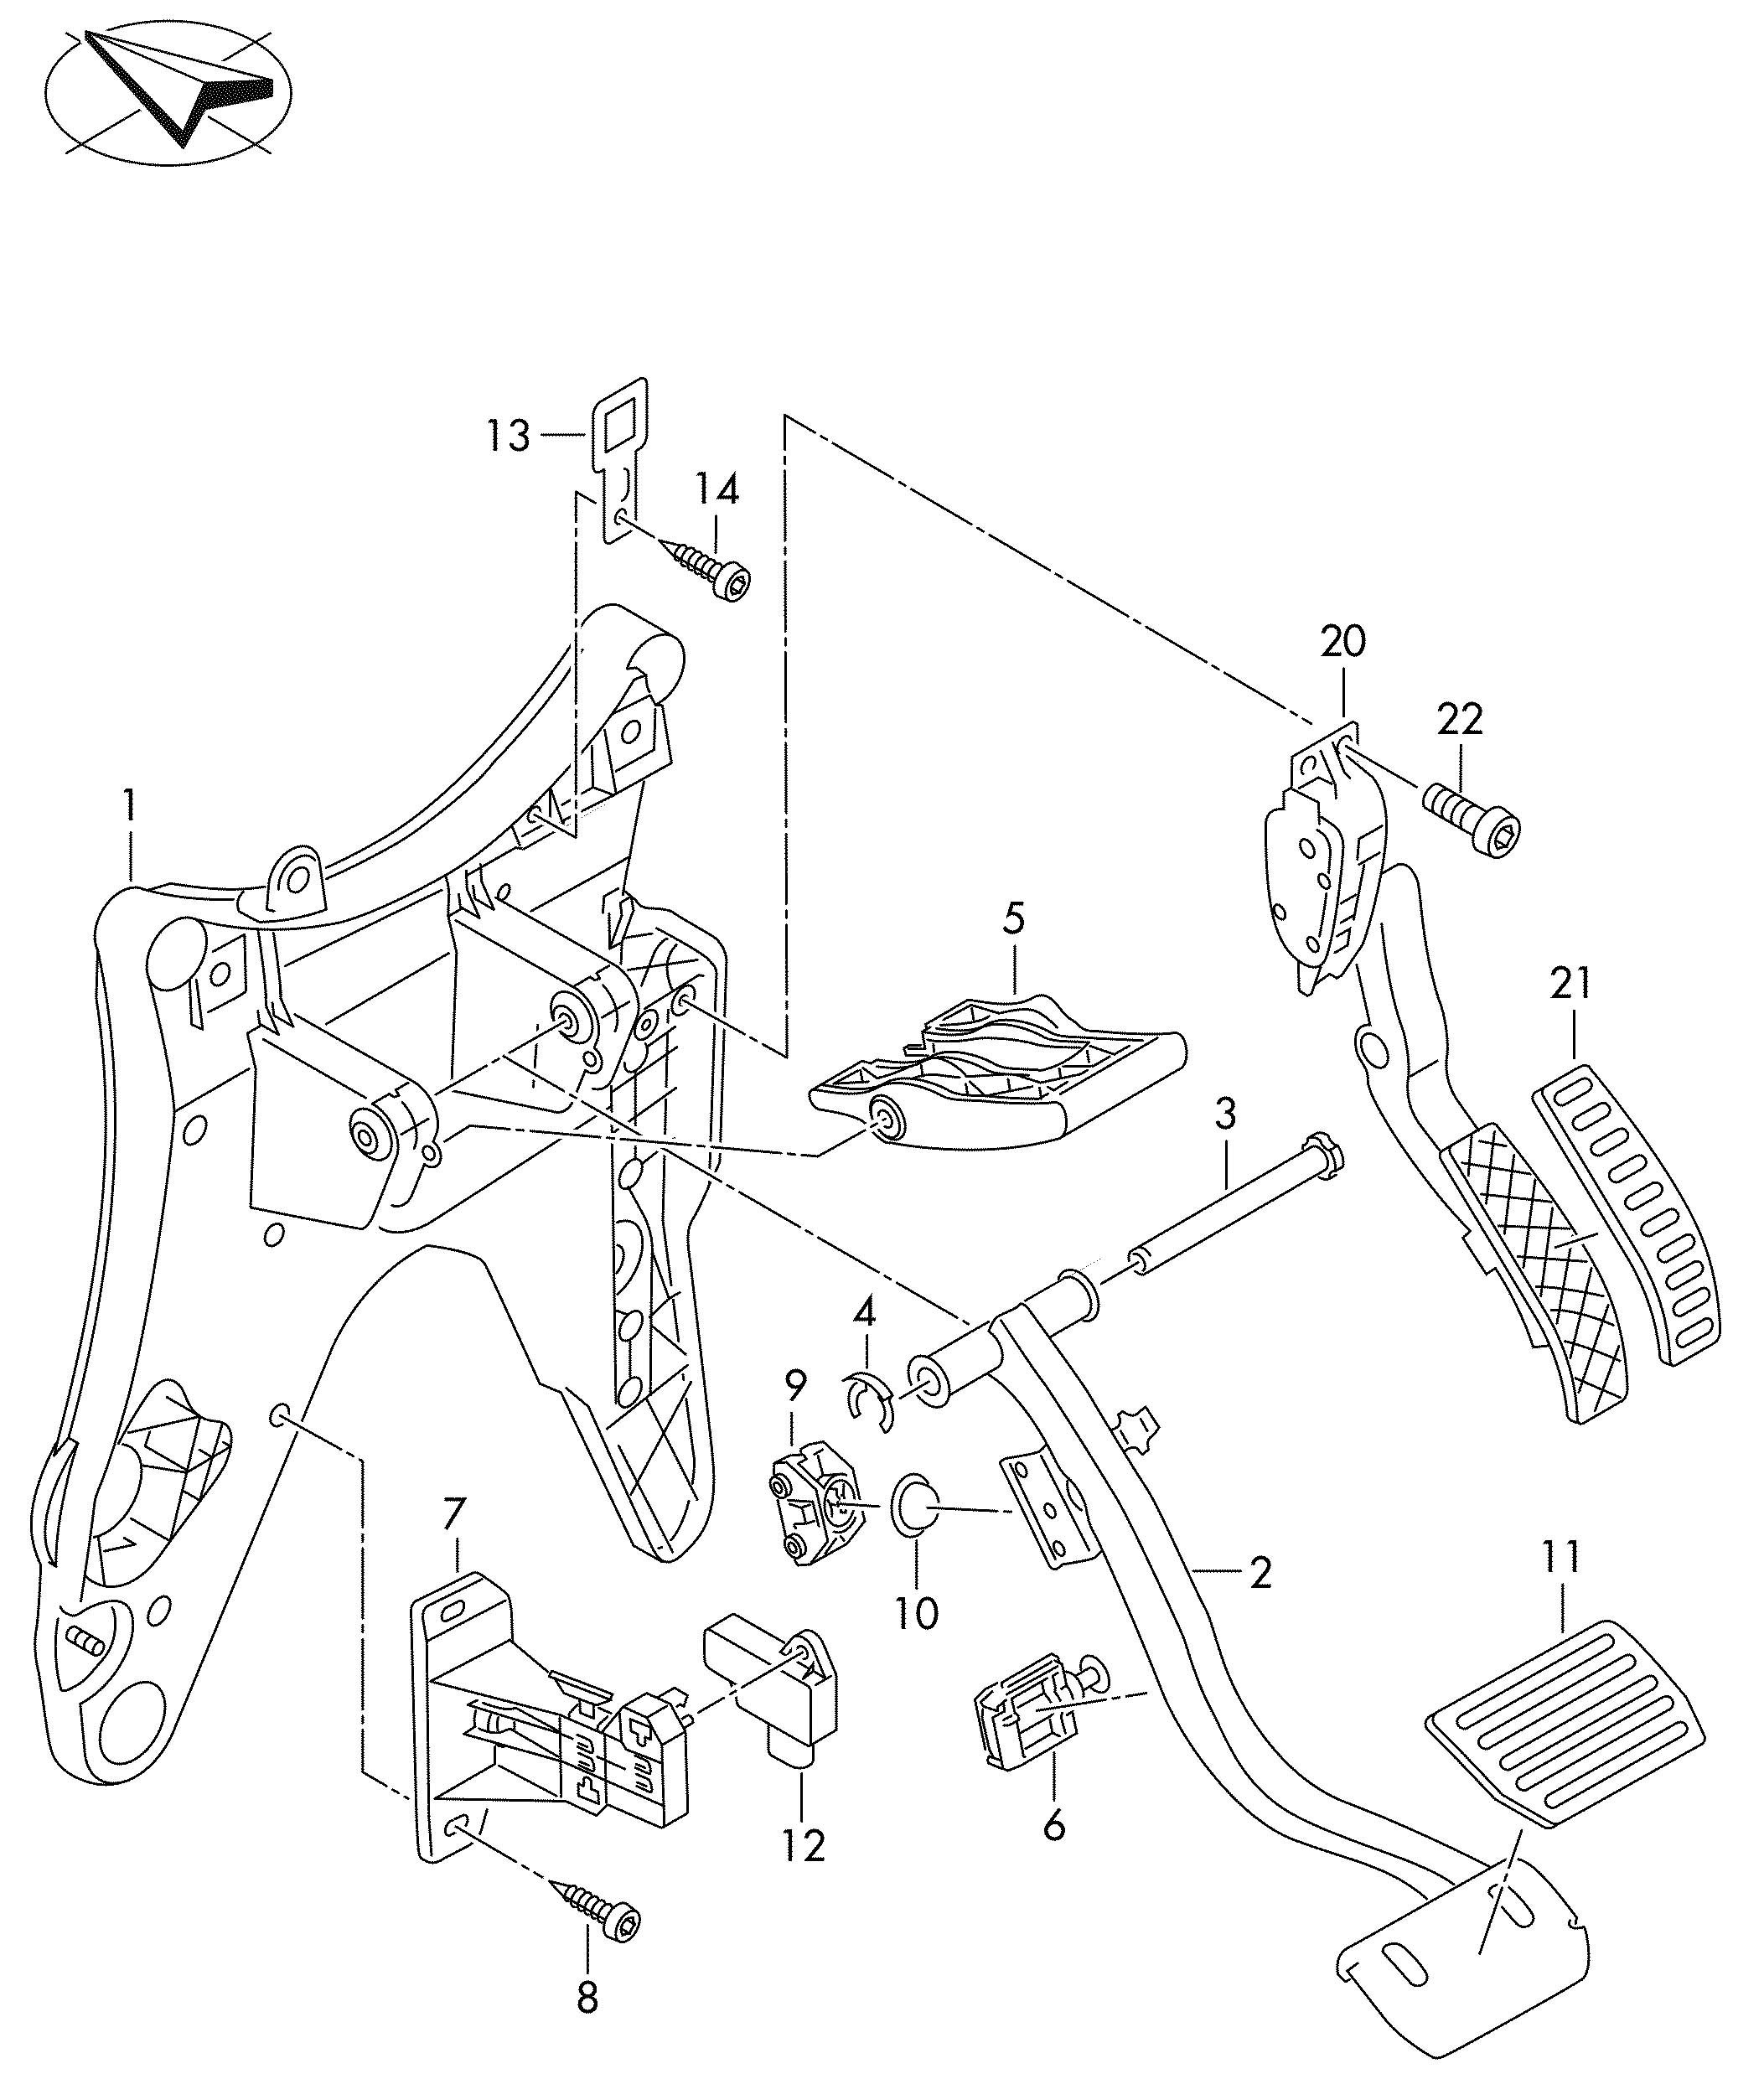 Volkswagen Touareg Brake And Acc Pedal Assembly